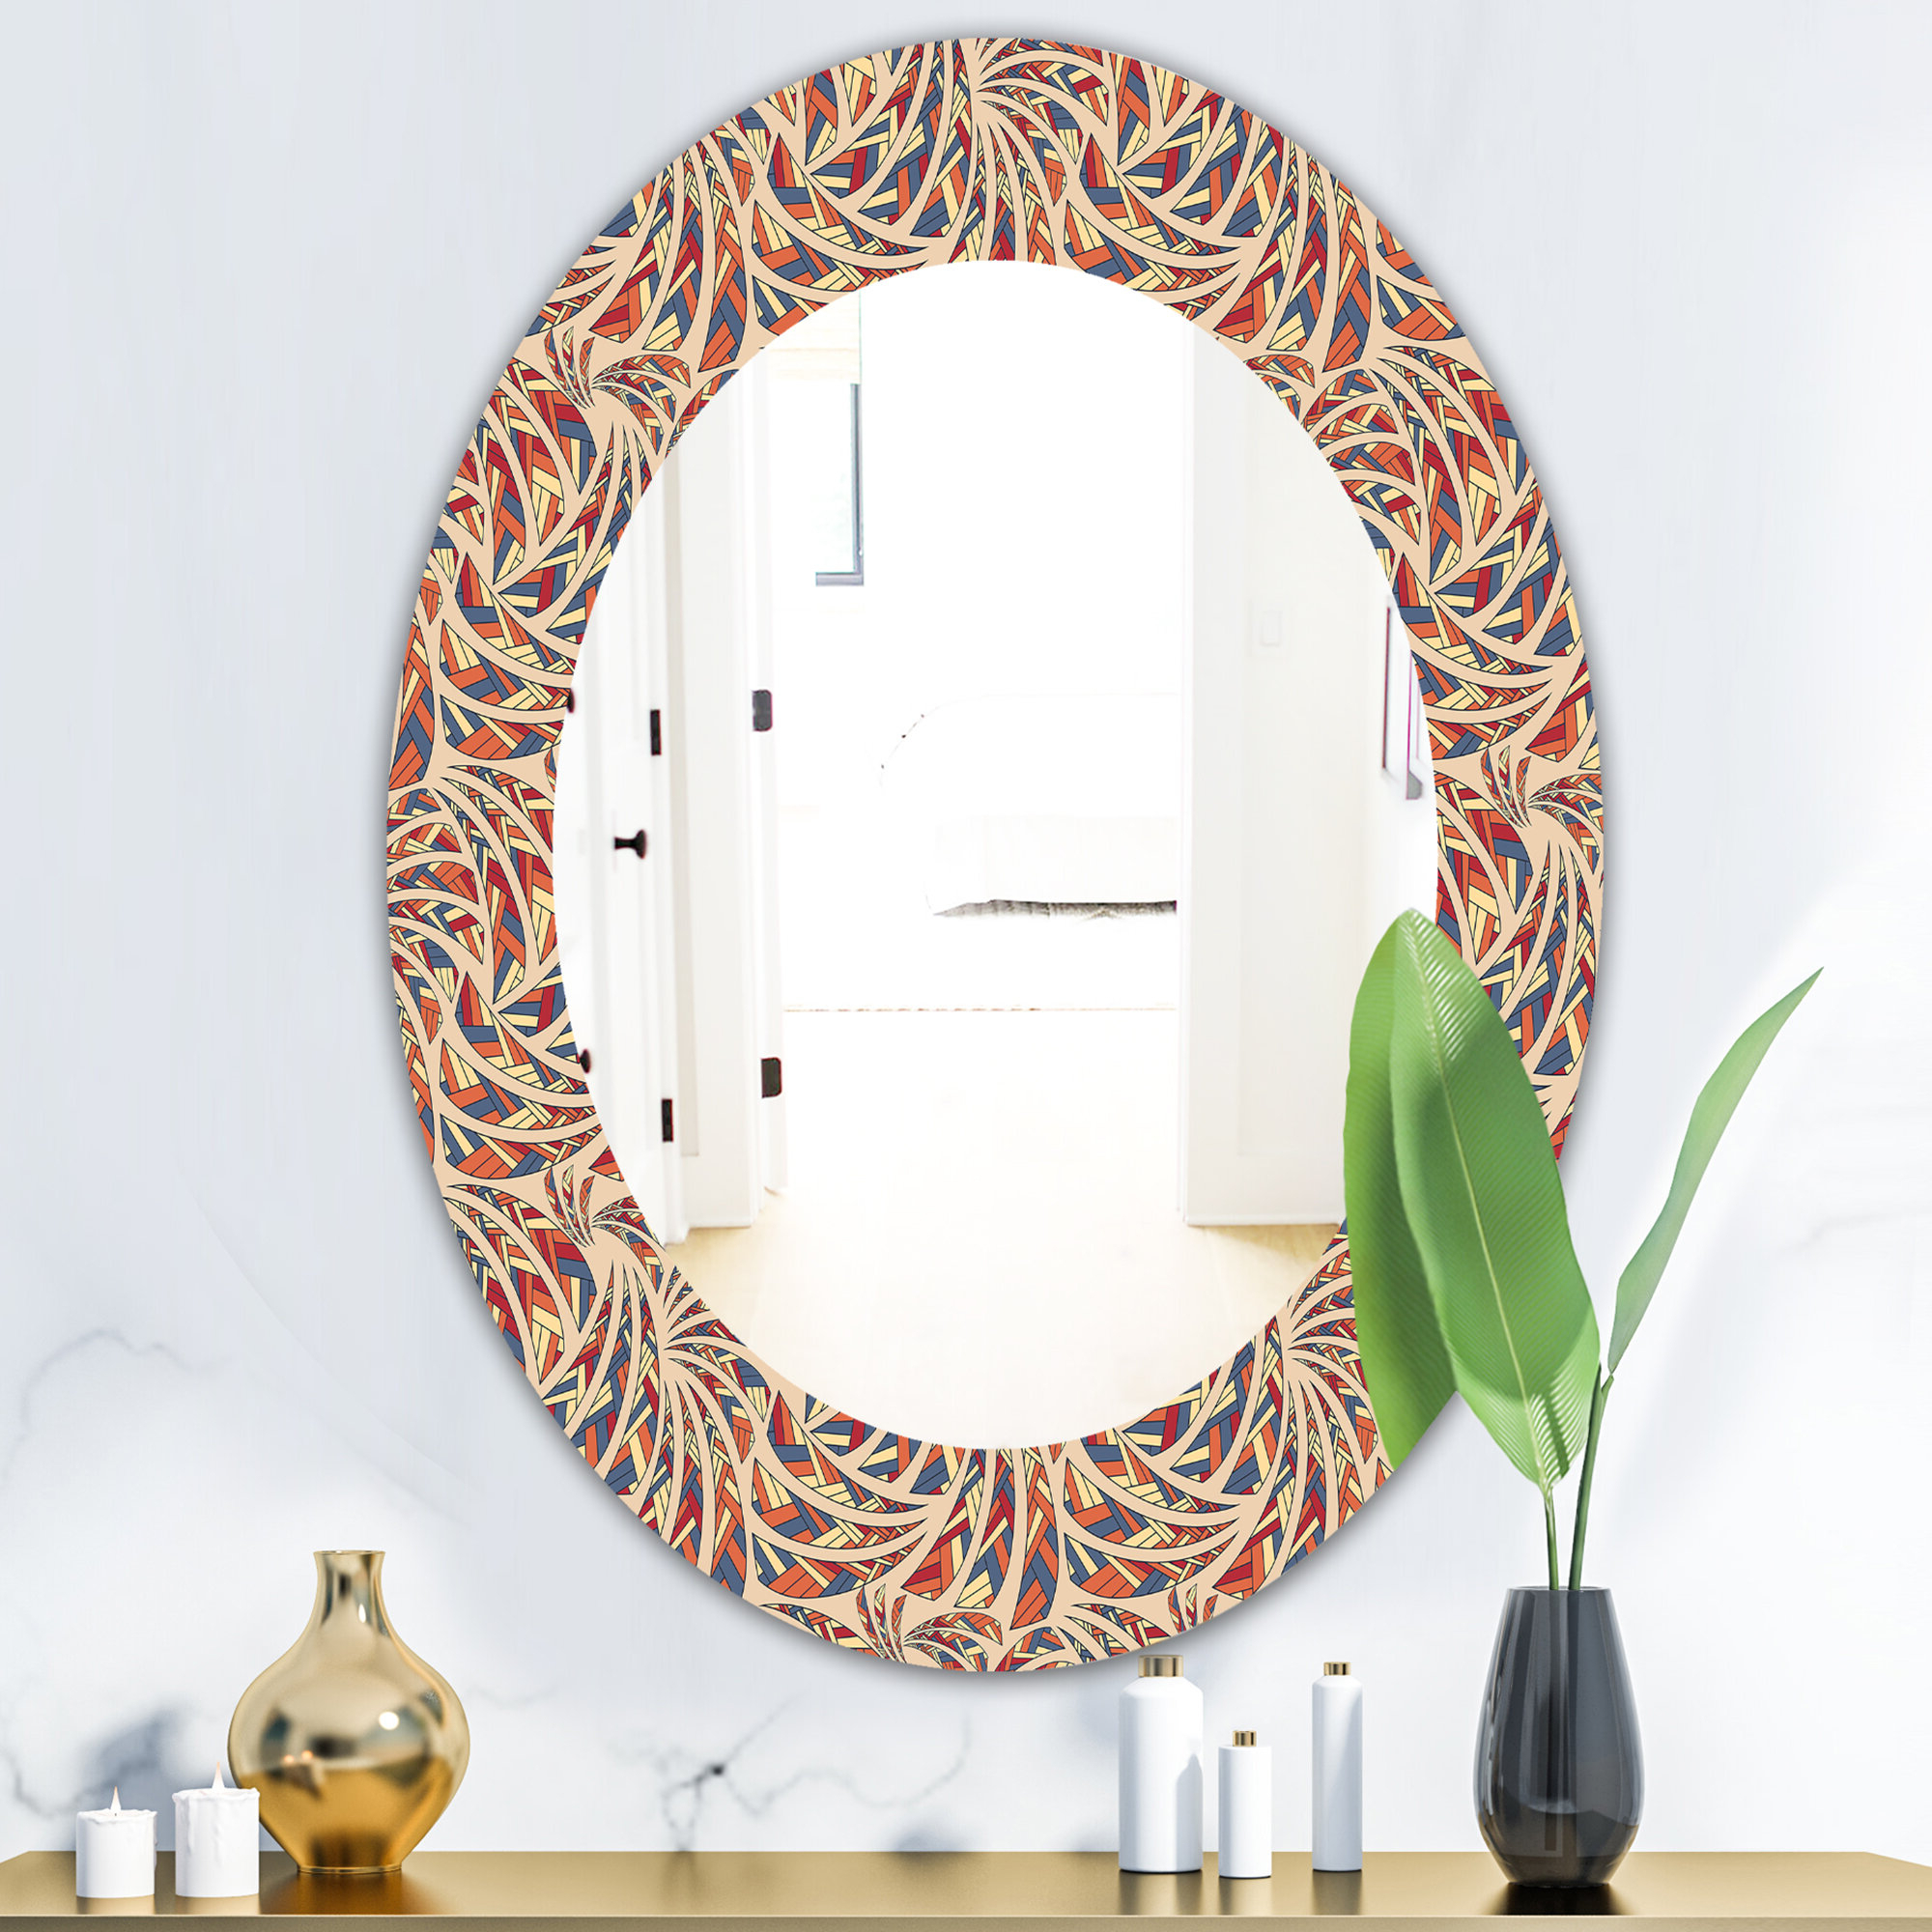 Ethnic Bohemian And Eclectic Frameless Wall Mirror With Regard To Popular Ethnic Wall Mirrors (View 3 of 20)